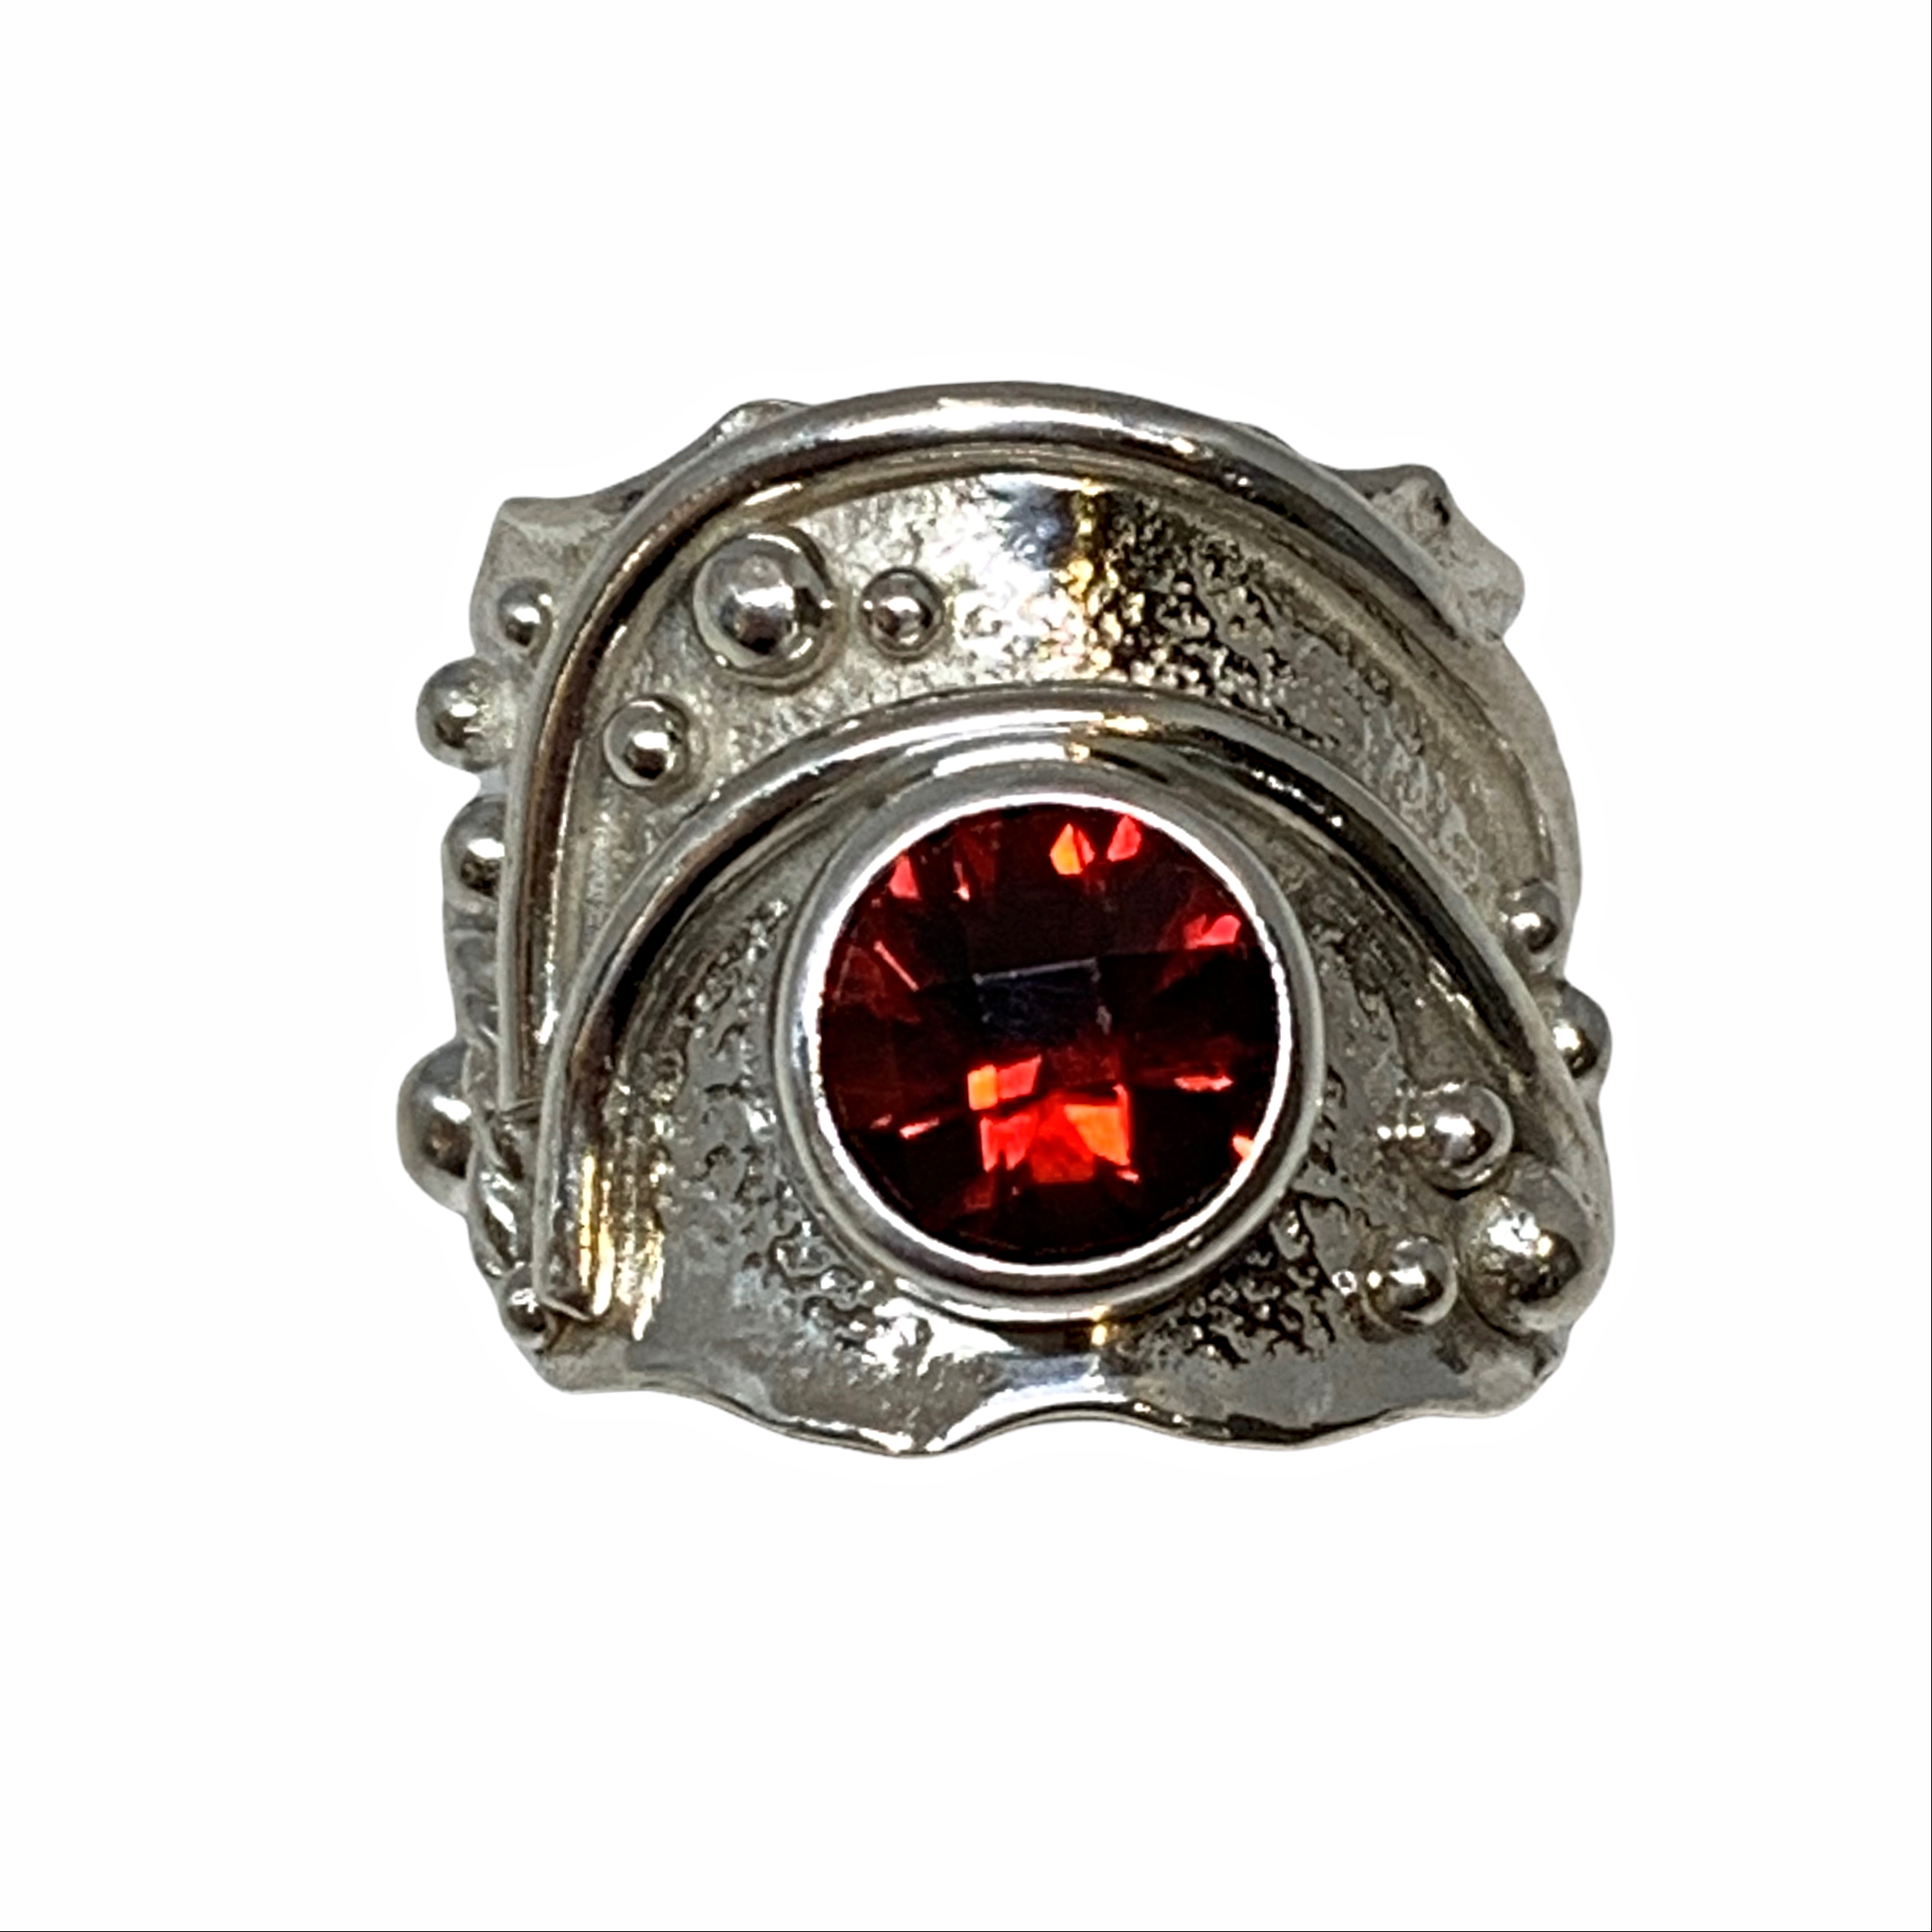 Handmade sterling silver and garnet ring by A&R Jewellery   Effusion Art Gallery + Cast Glass Studio, Invermere BC